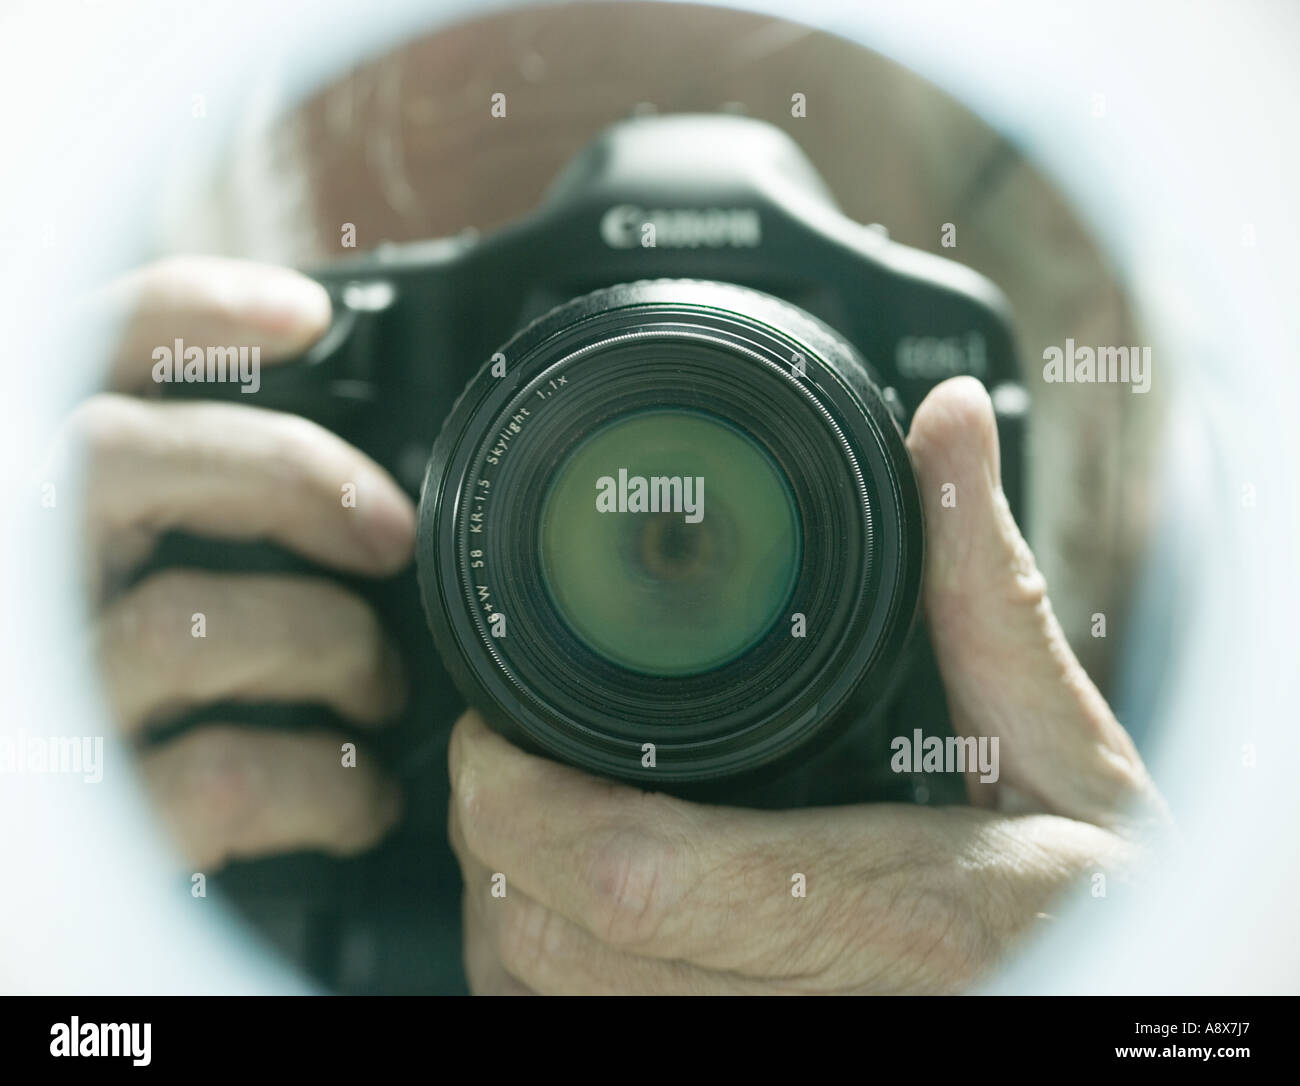 Digital camera pointing straight out of frame - Stock Image